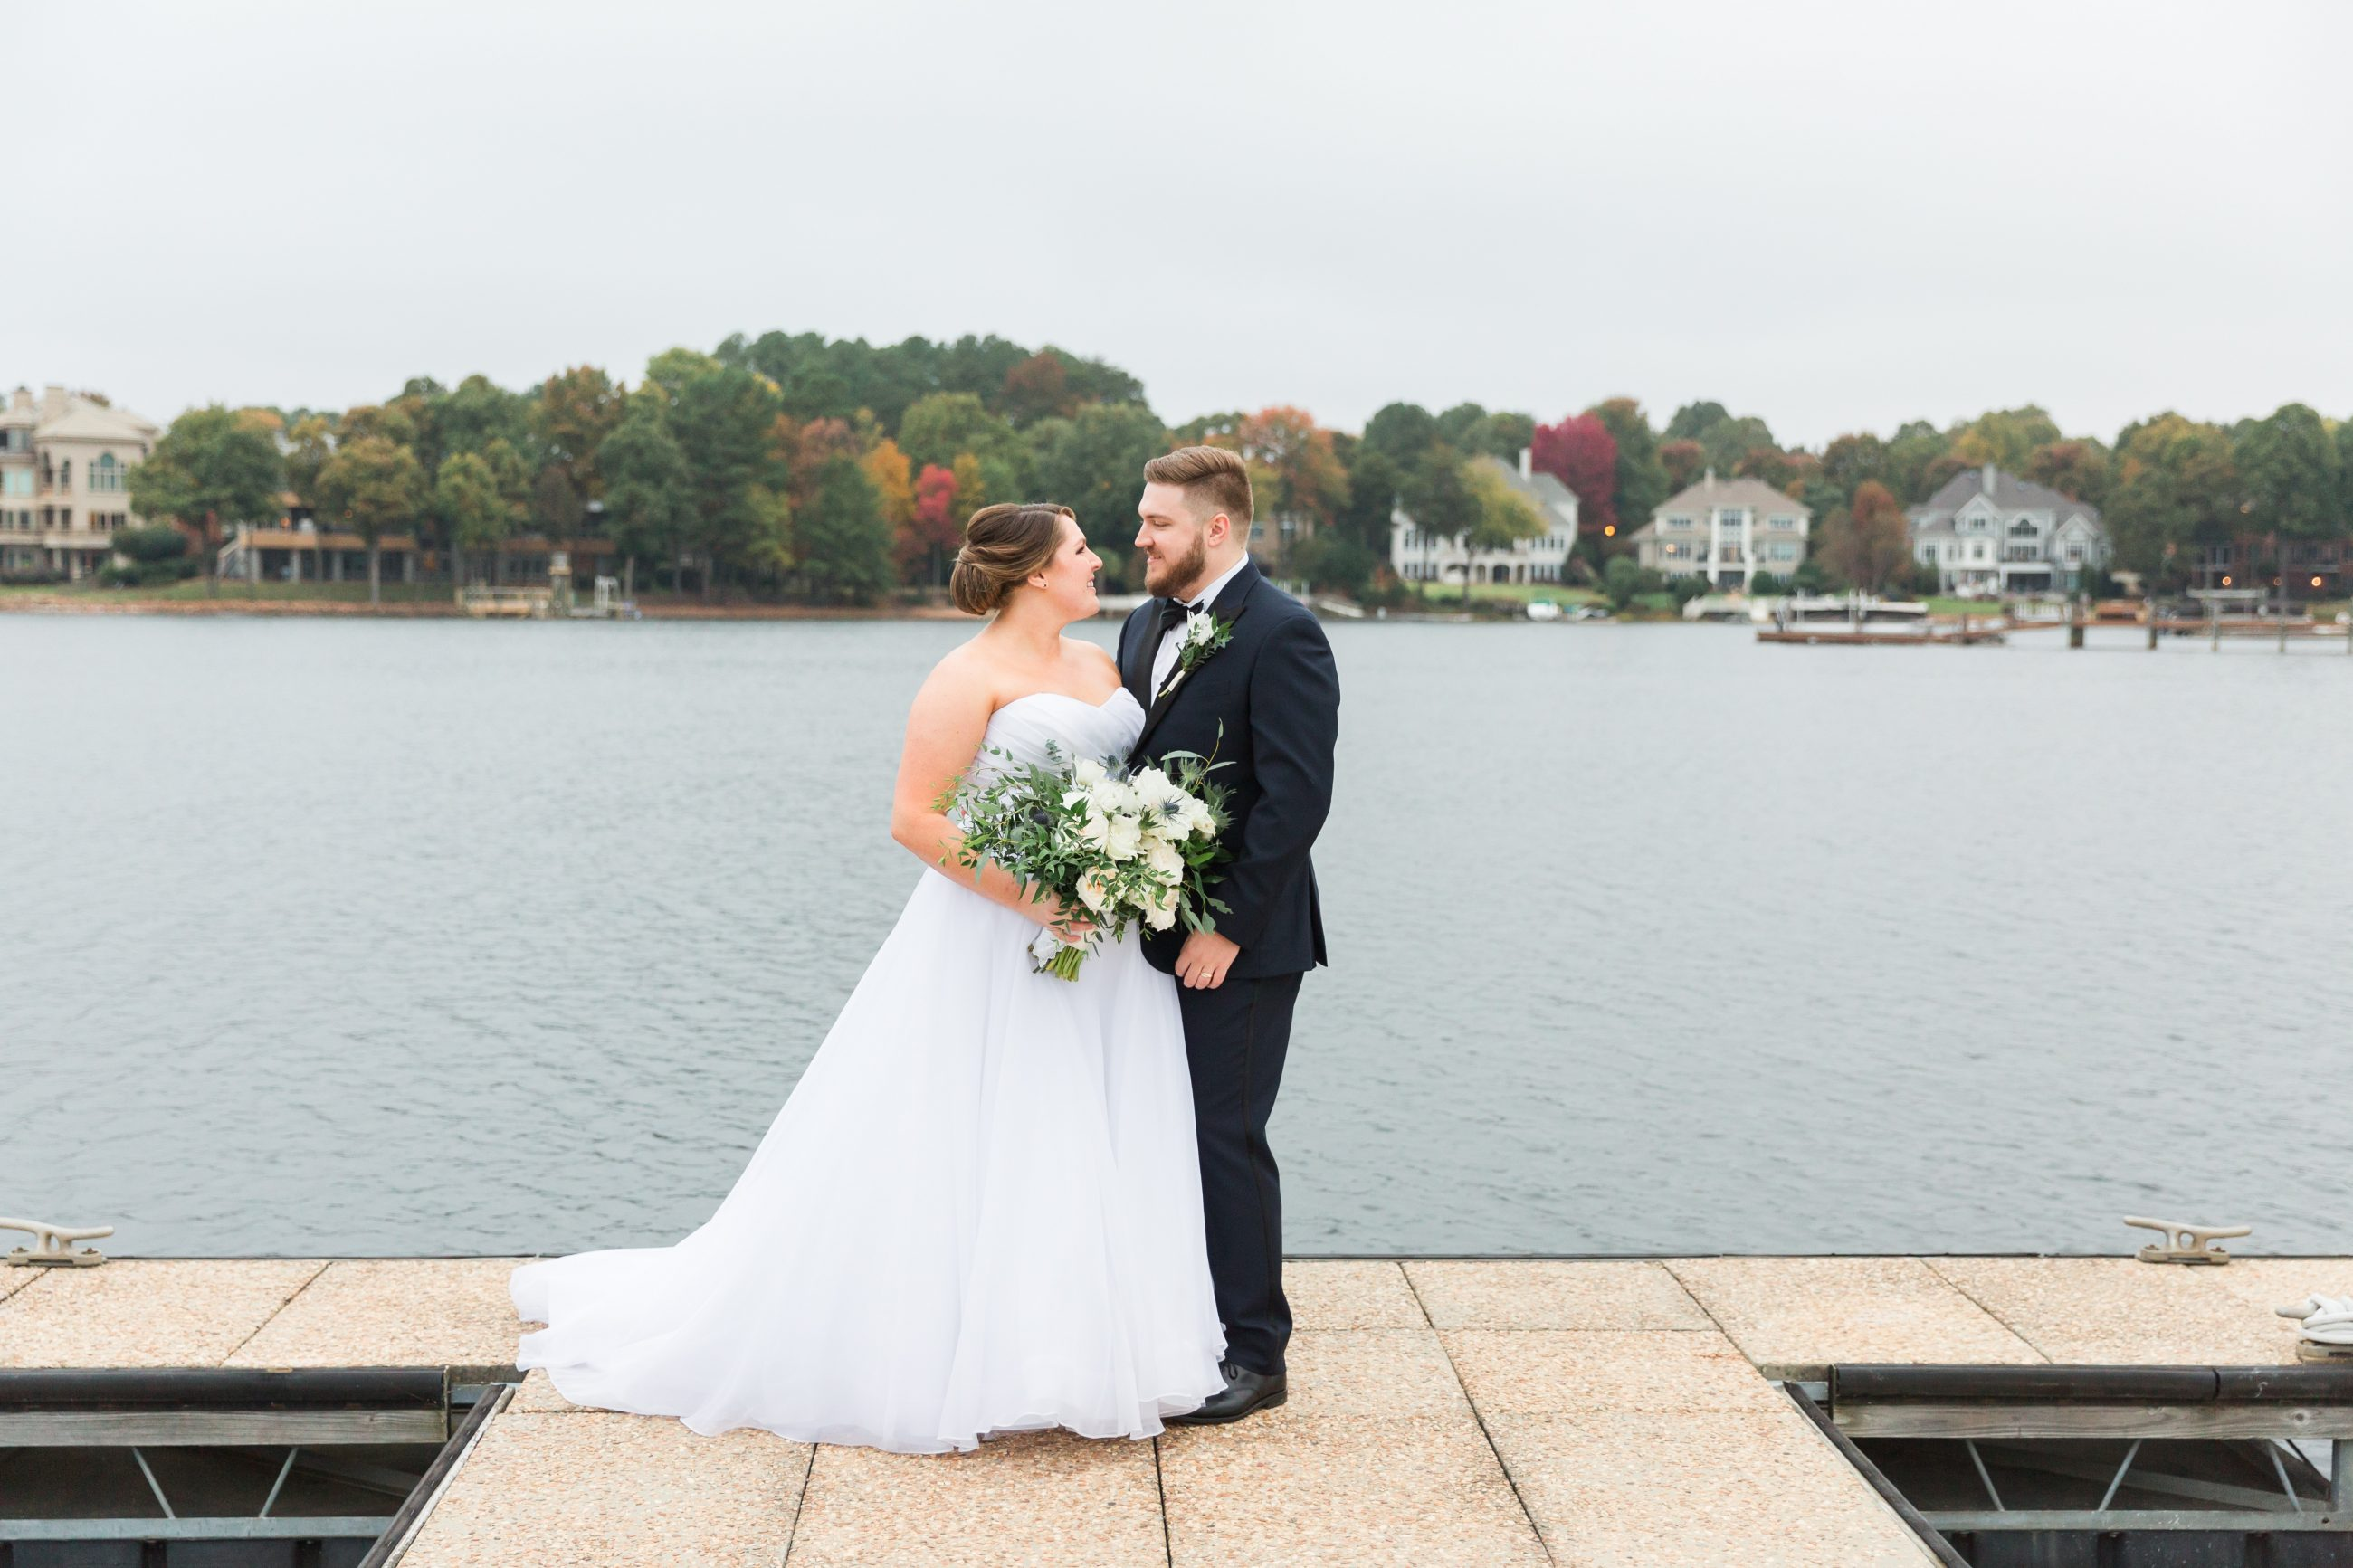 Peninsula Yacht Club wedding dock picture of bride and groom flowers by Magnificent Moments Weddings